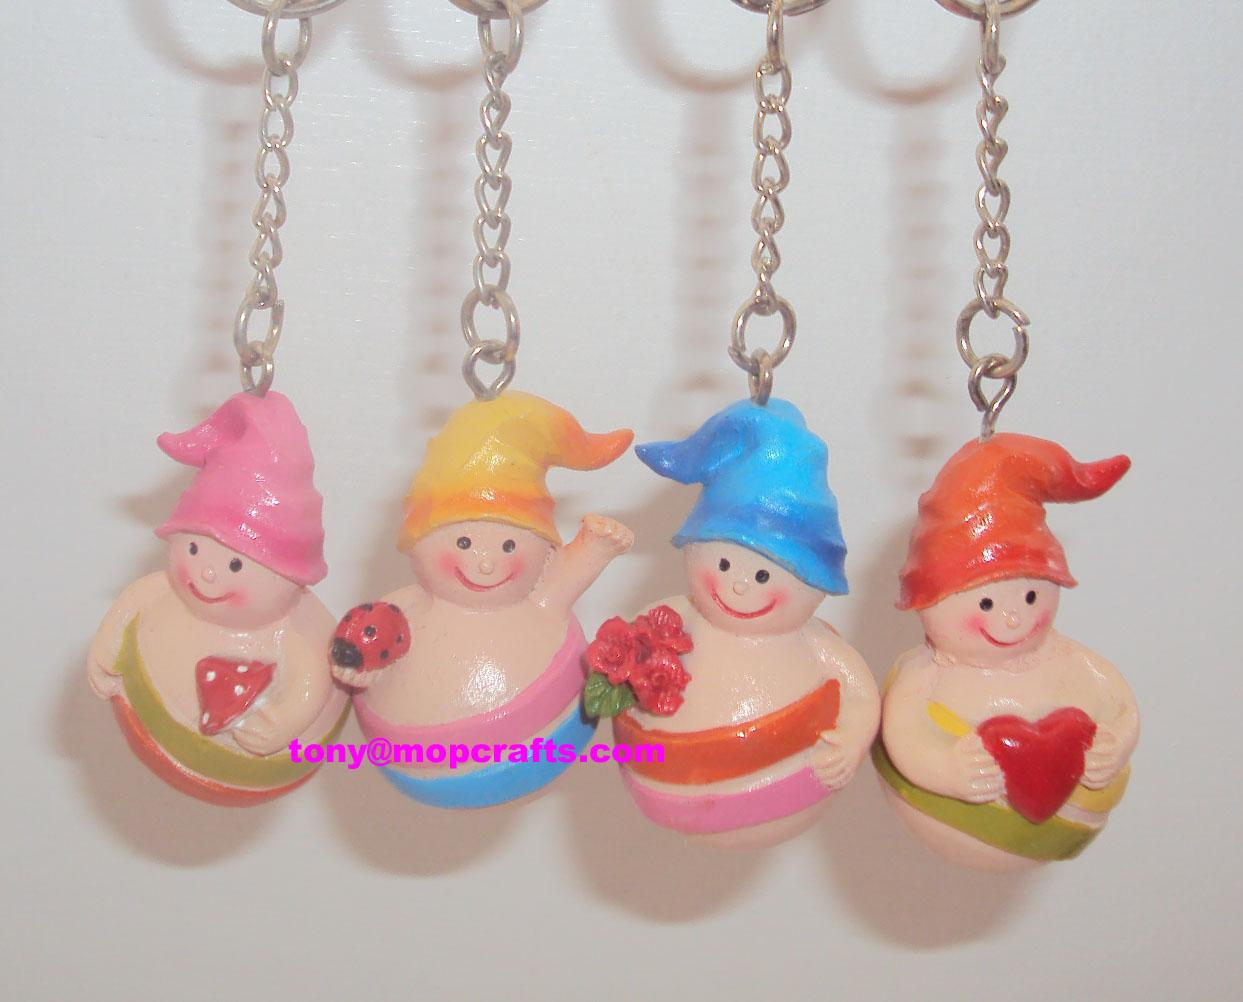 Resin keyring with souvenir gifts items 1